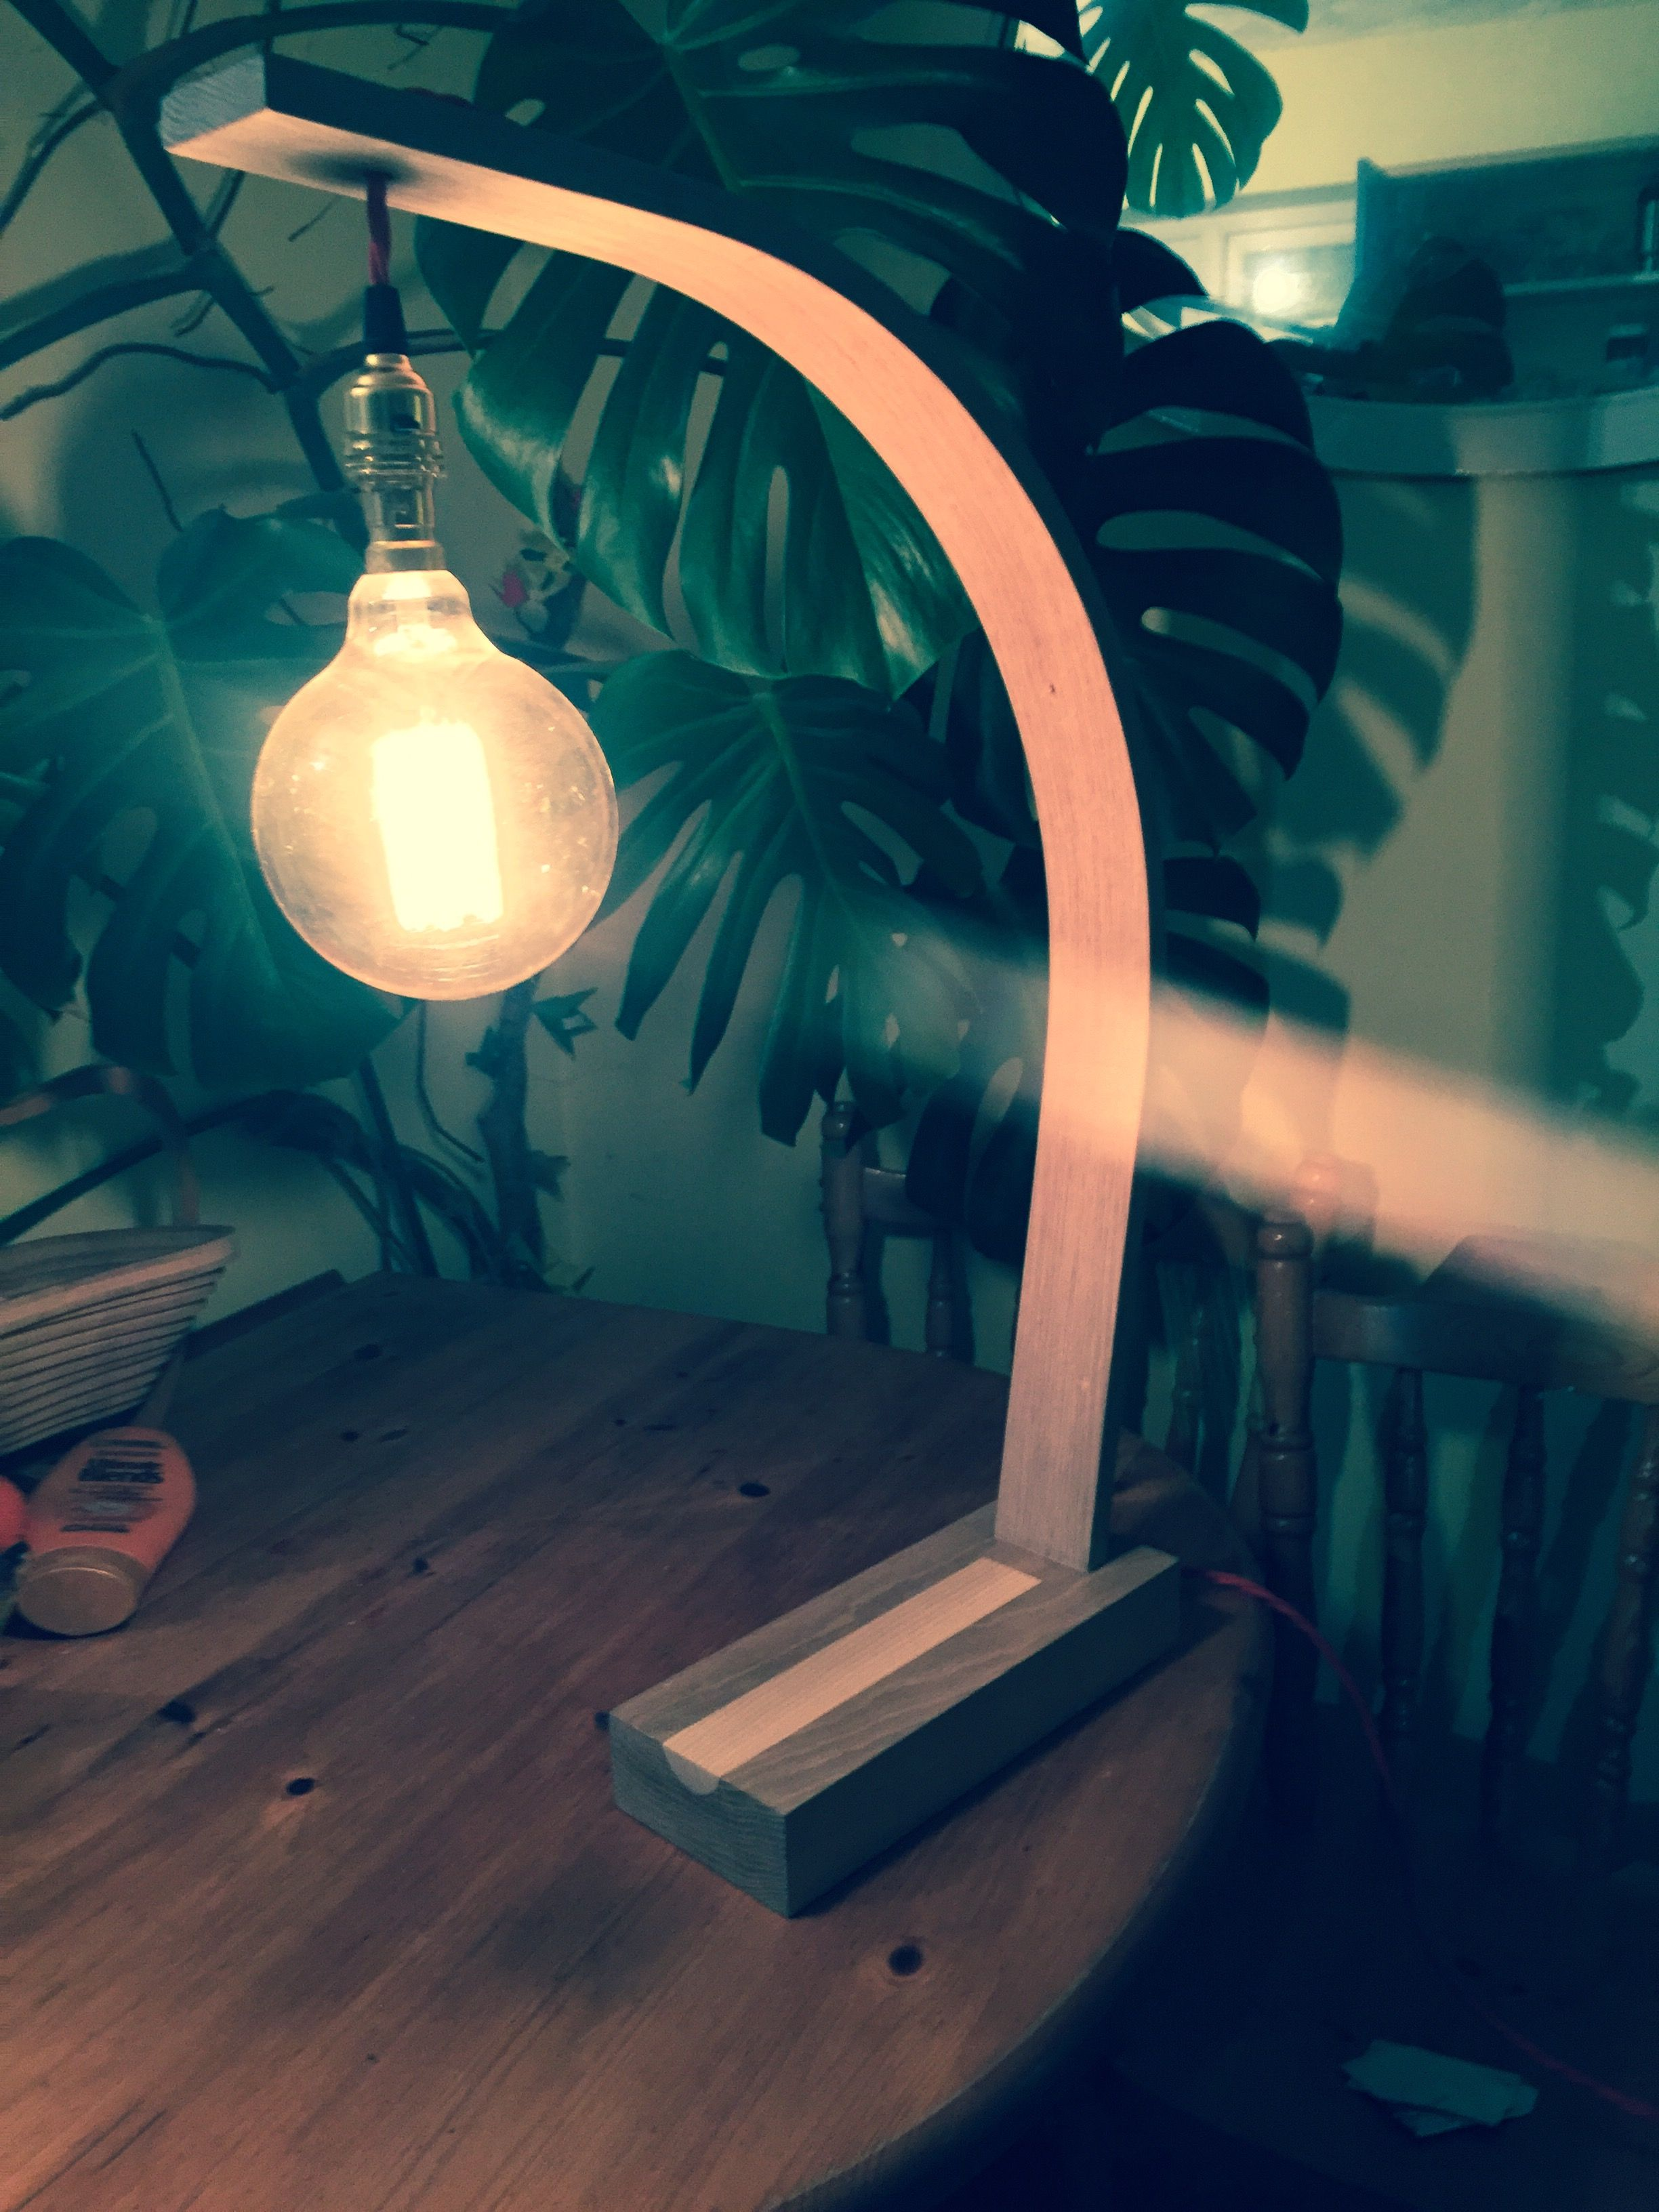 Charming Love This Steam Bent Oak Lamp By Tom Prentice Design ❤️ Great Ideas